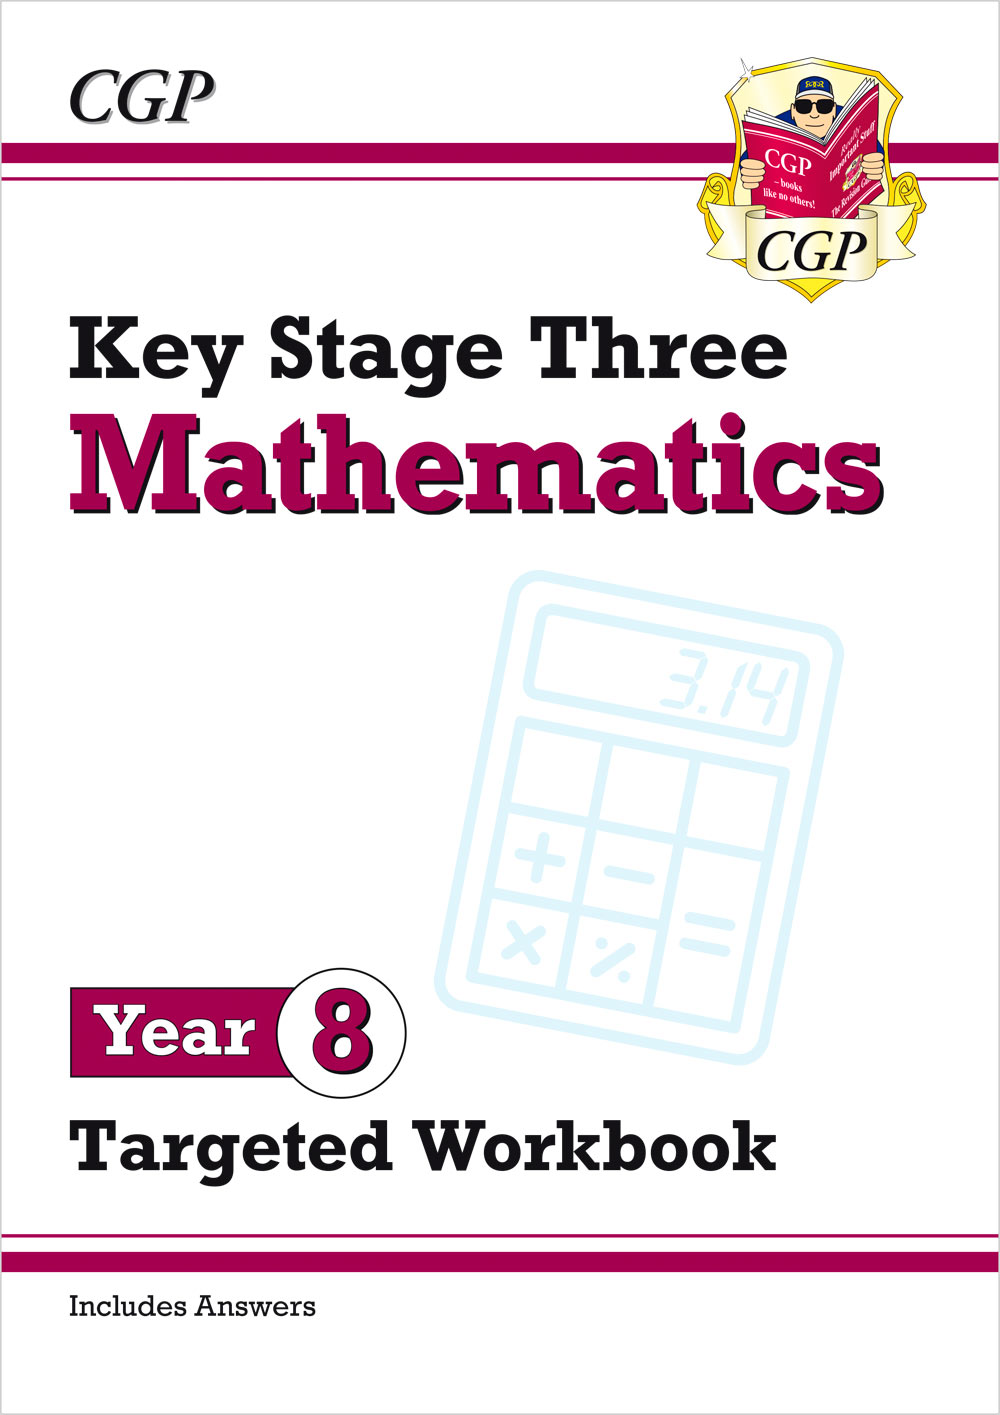 M8W32 - KS3 Maths Year 8 Targeted Workbook (with answers)